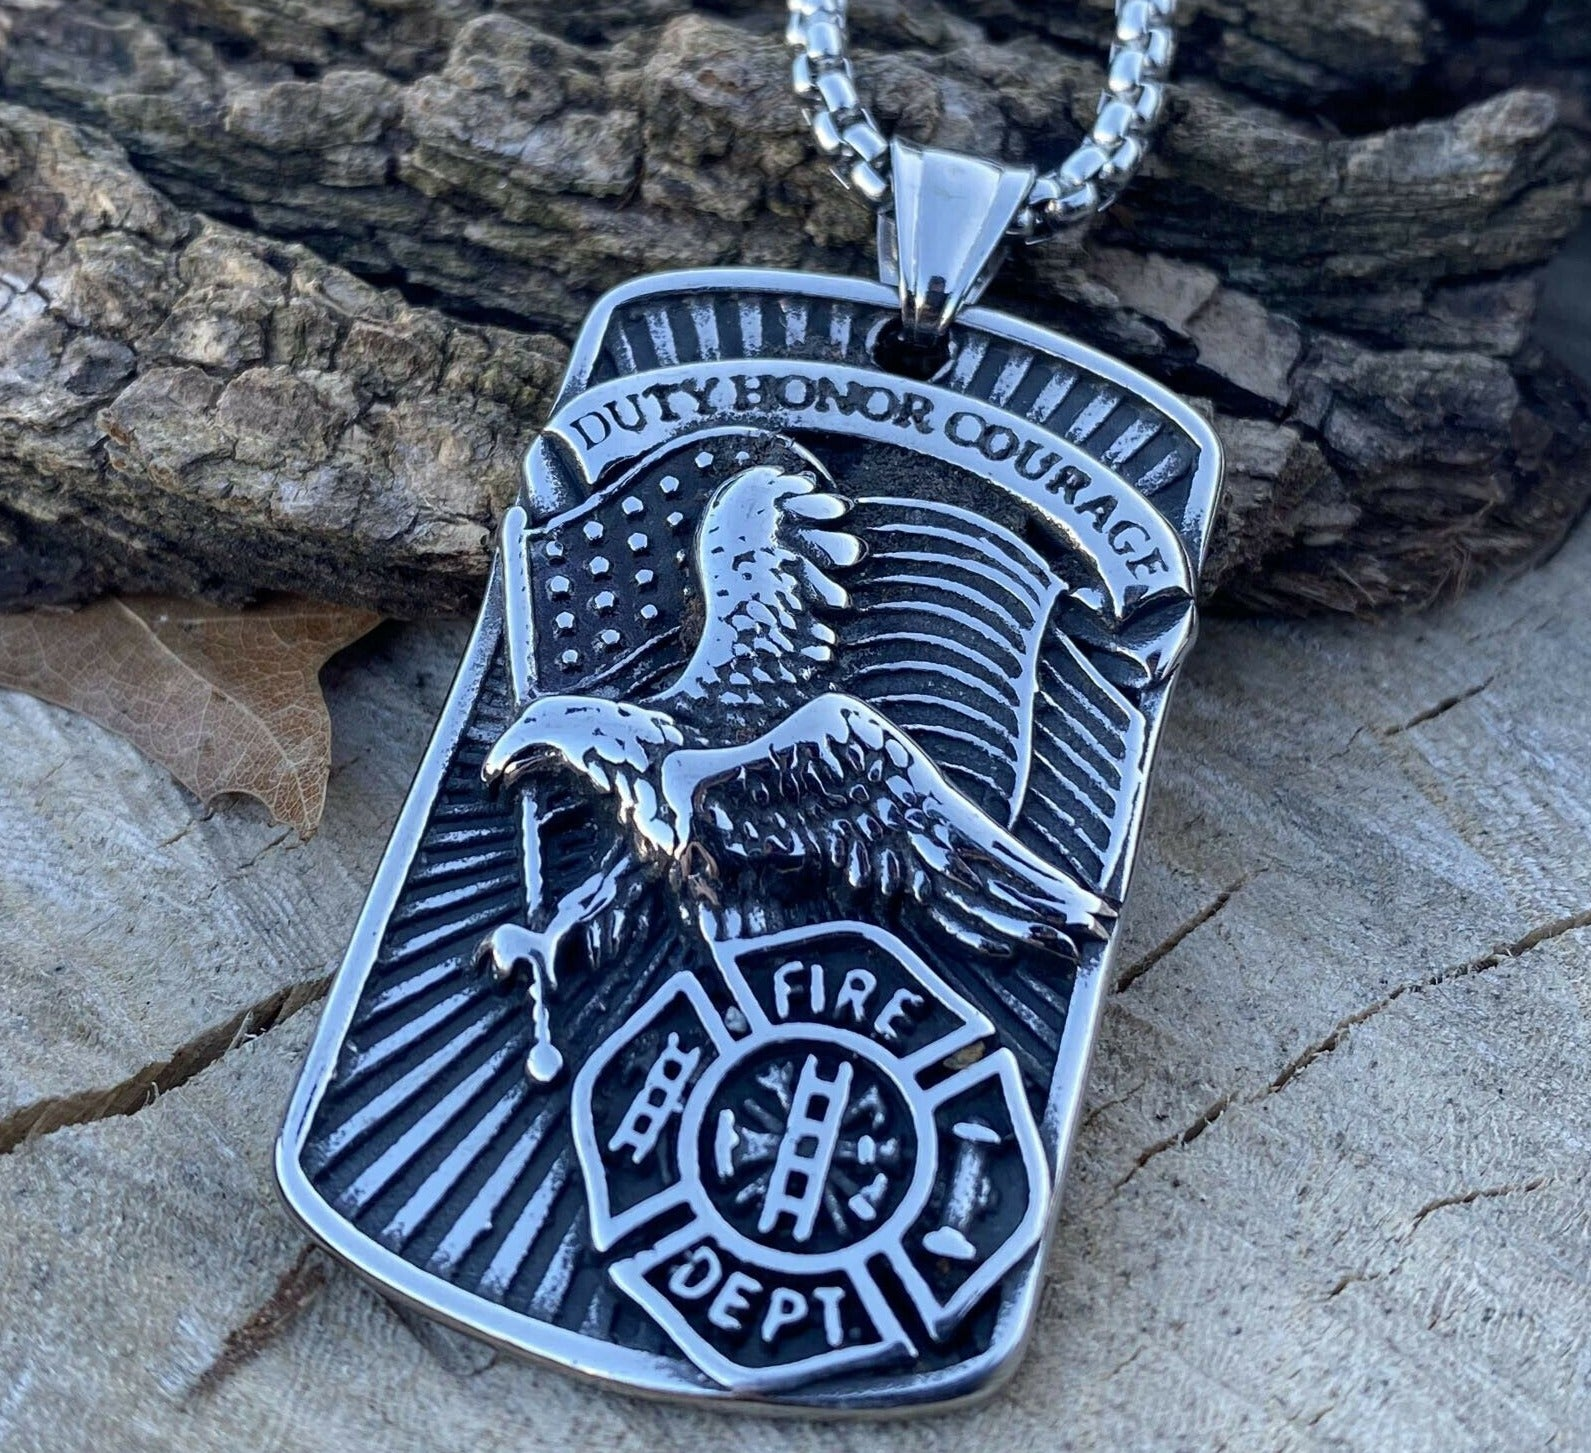 Fireman's Duty Honor Courage Necklace